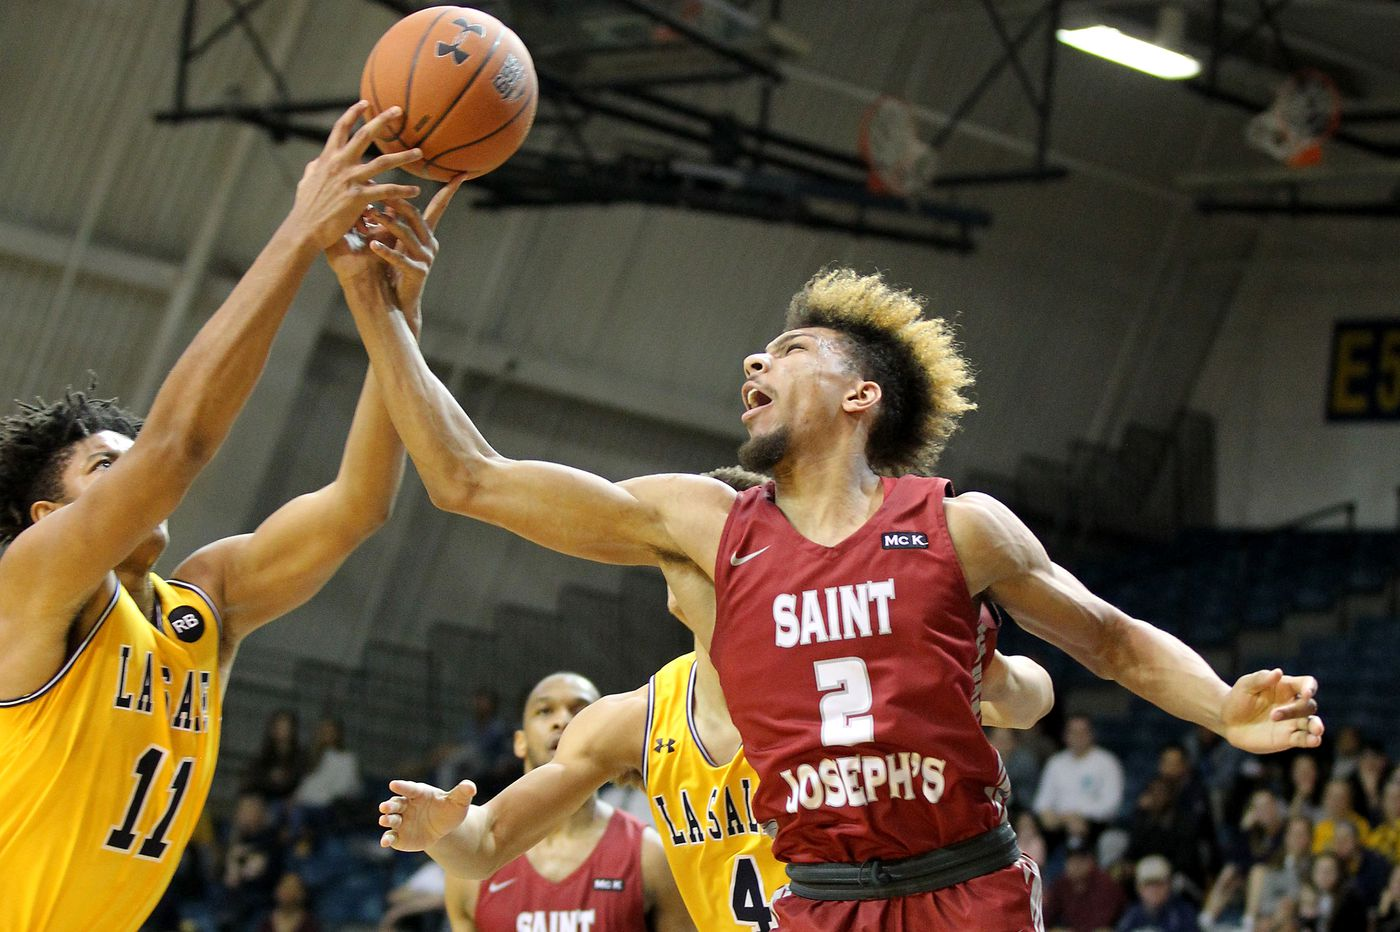 La Salle beats St. Joseph's for its fourth straight win